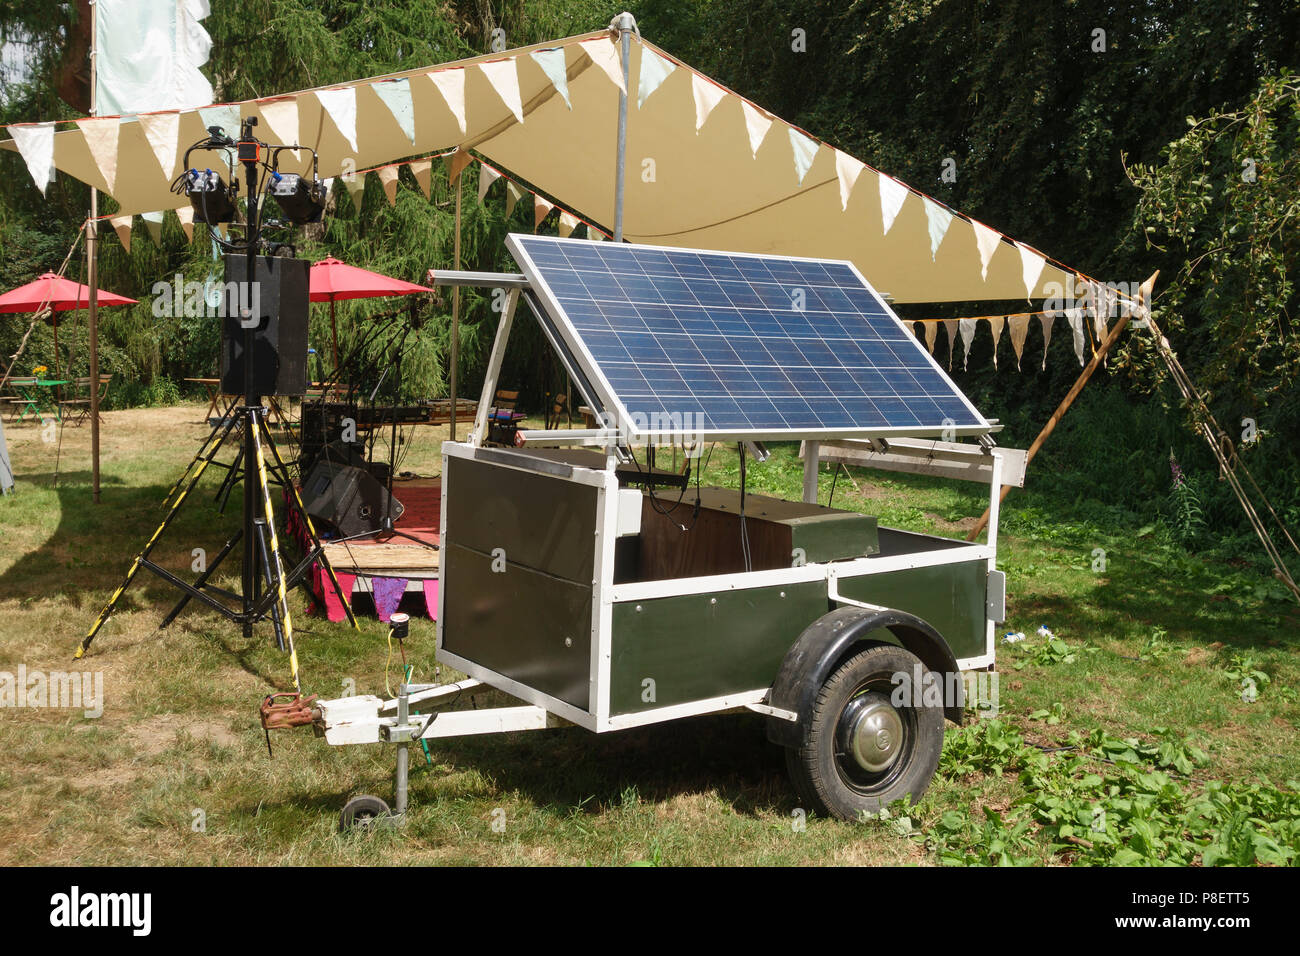 UK. A portable solar-powered generator provides free power at an open air music festival in summer - Stock Image